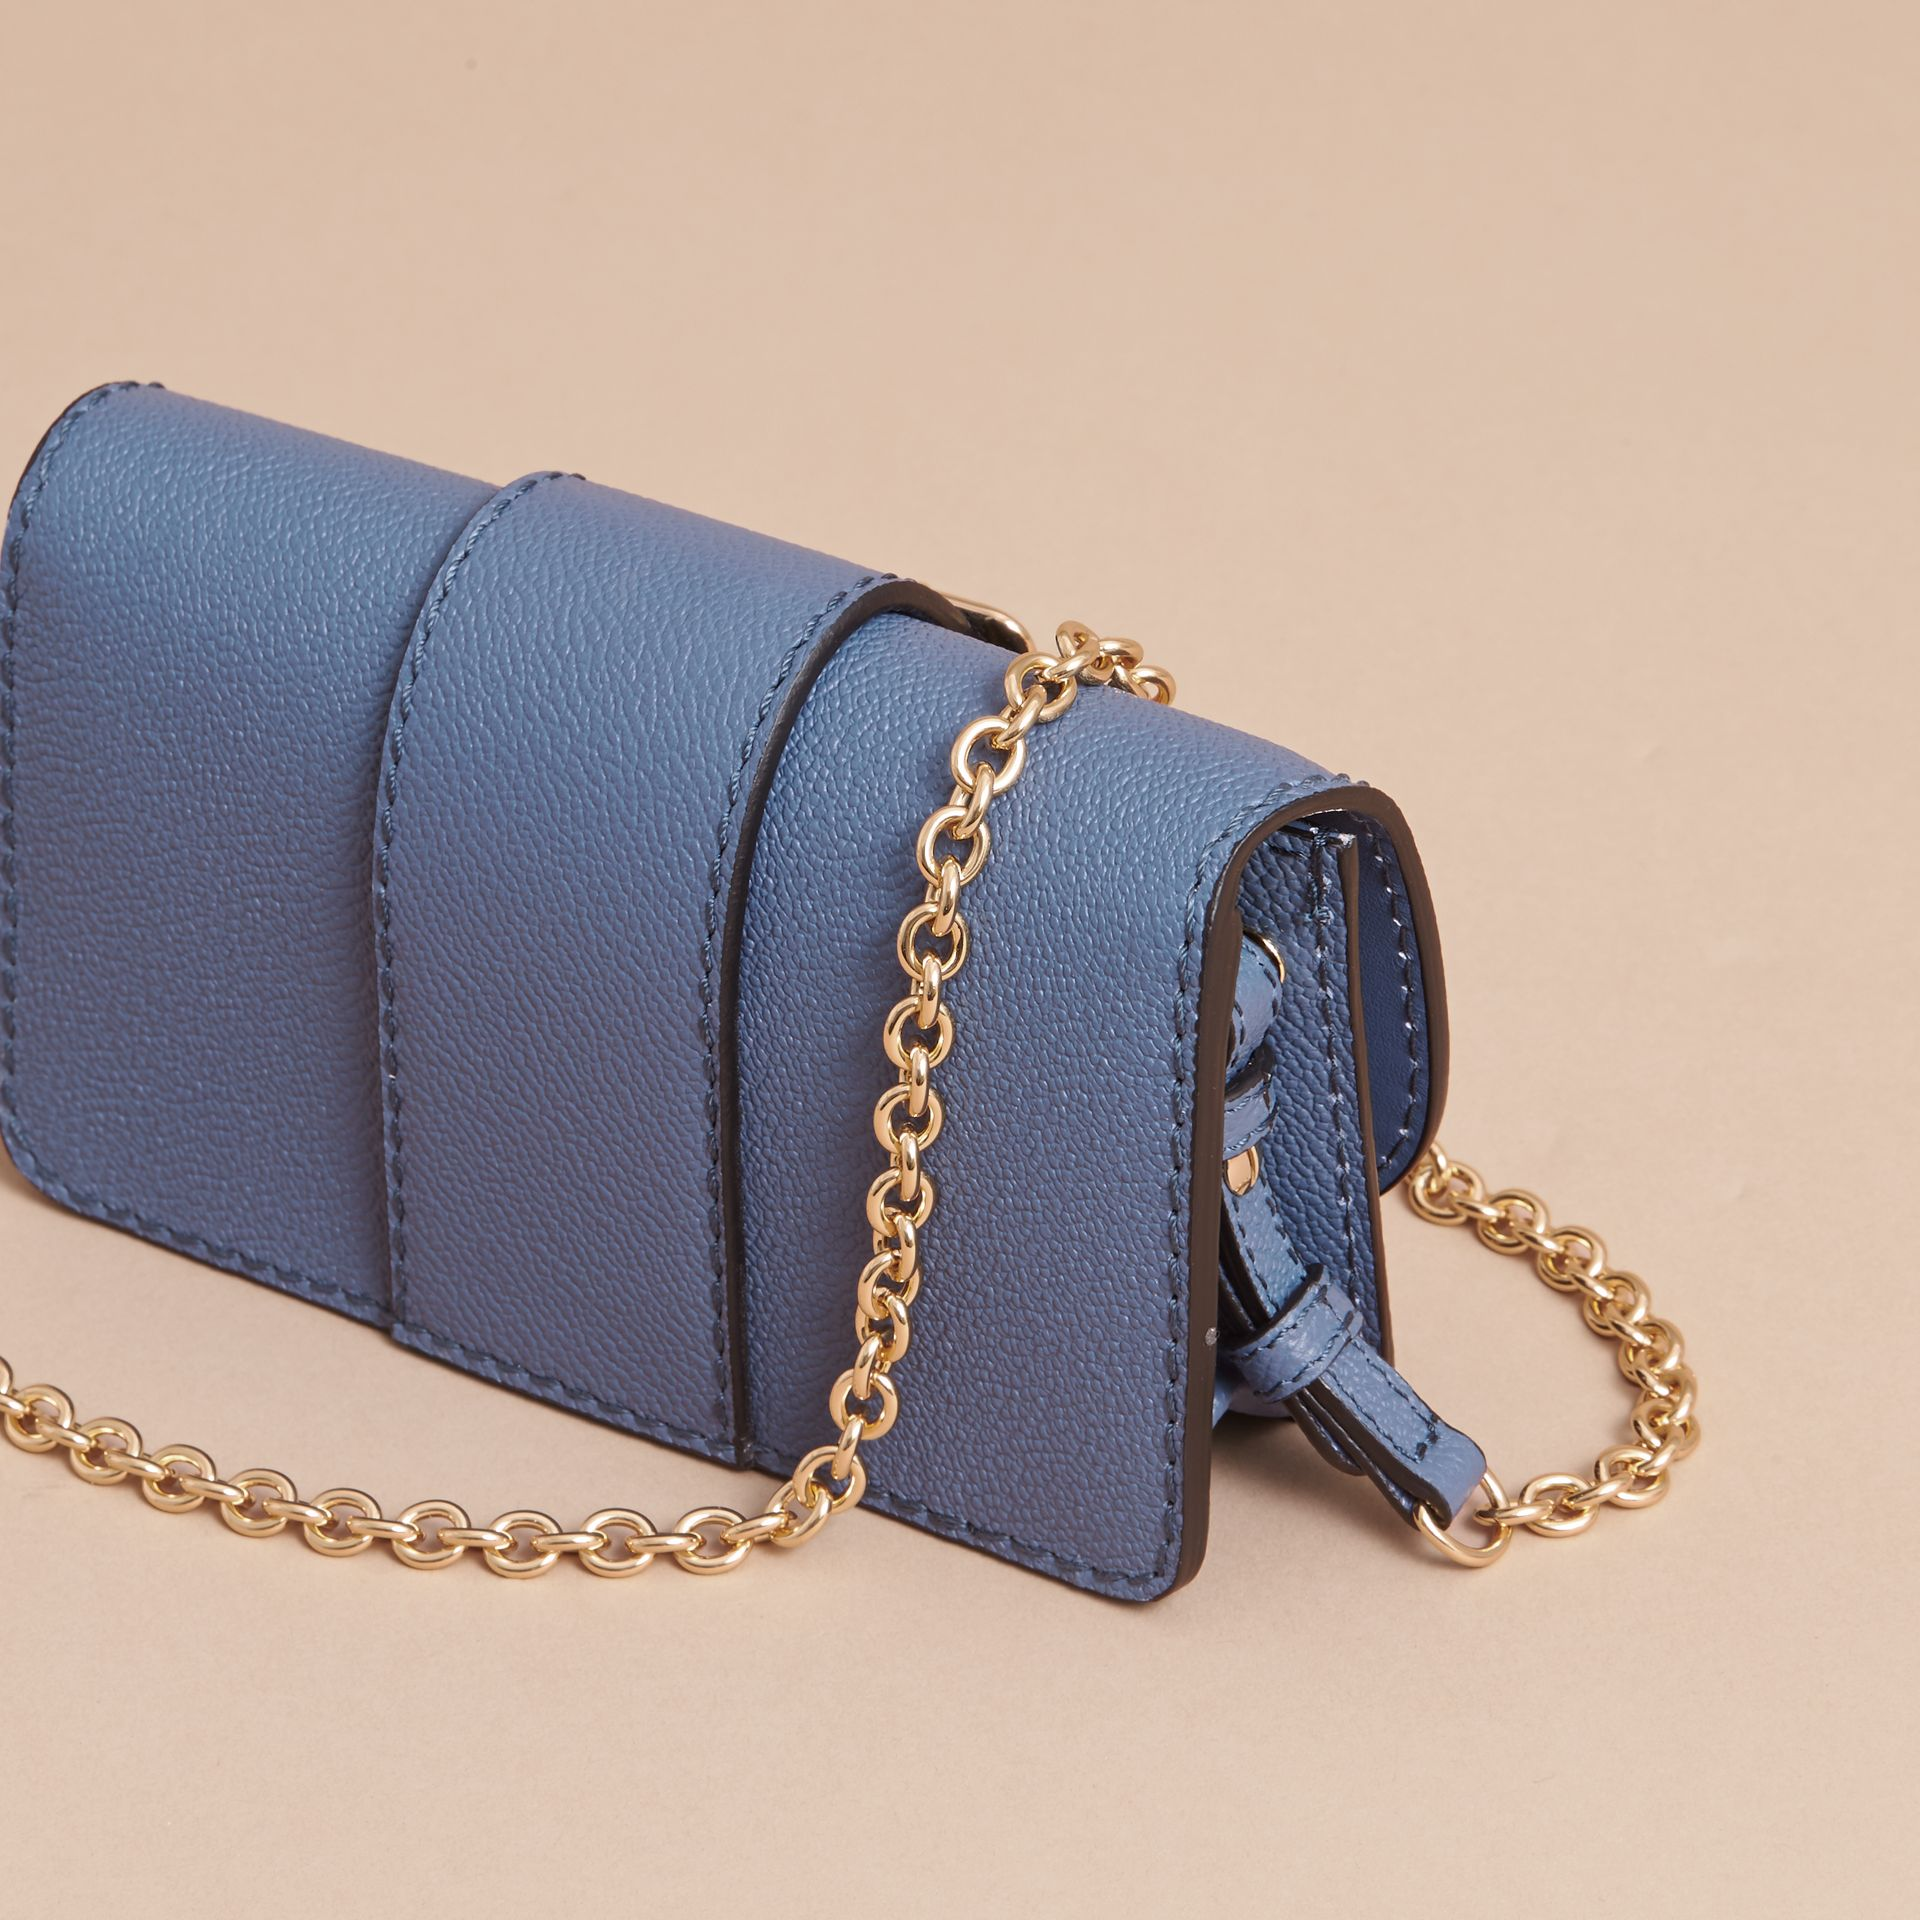 Mini sac The Buckle en cuir grainé (Bleu Acier) - Femme | Burberry - photo de la galerie 3